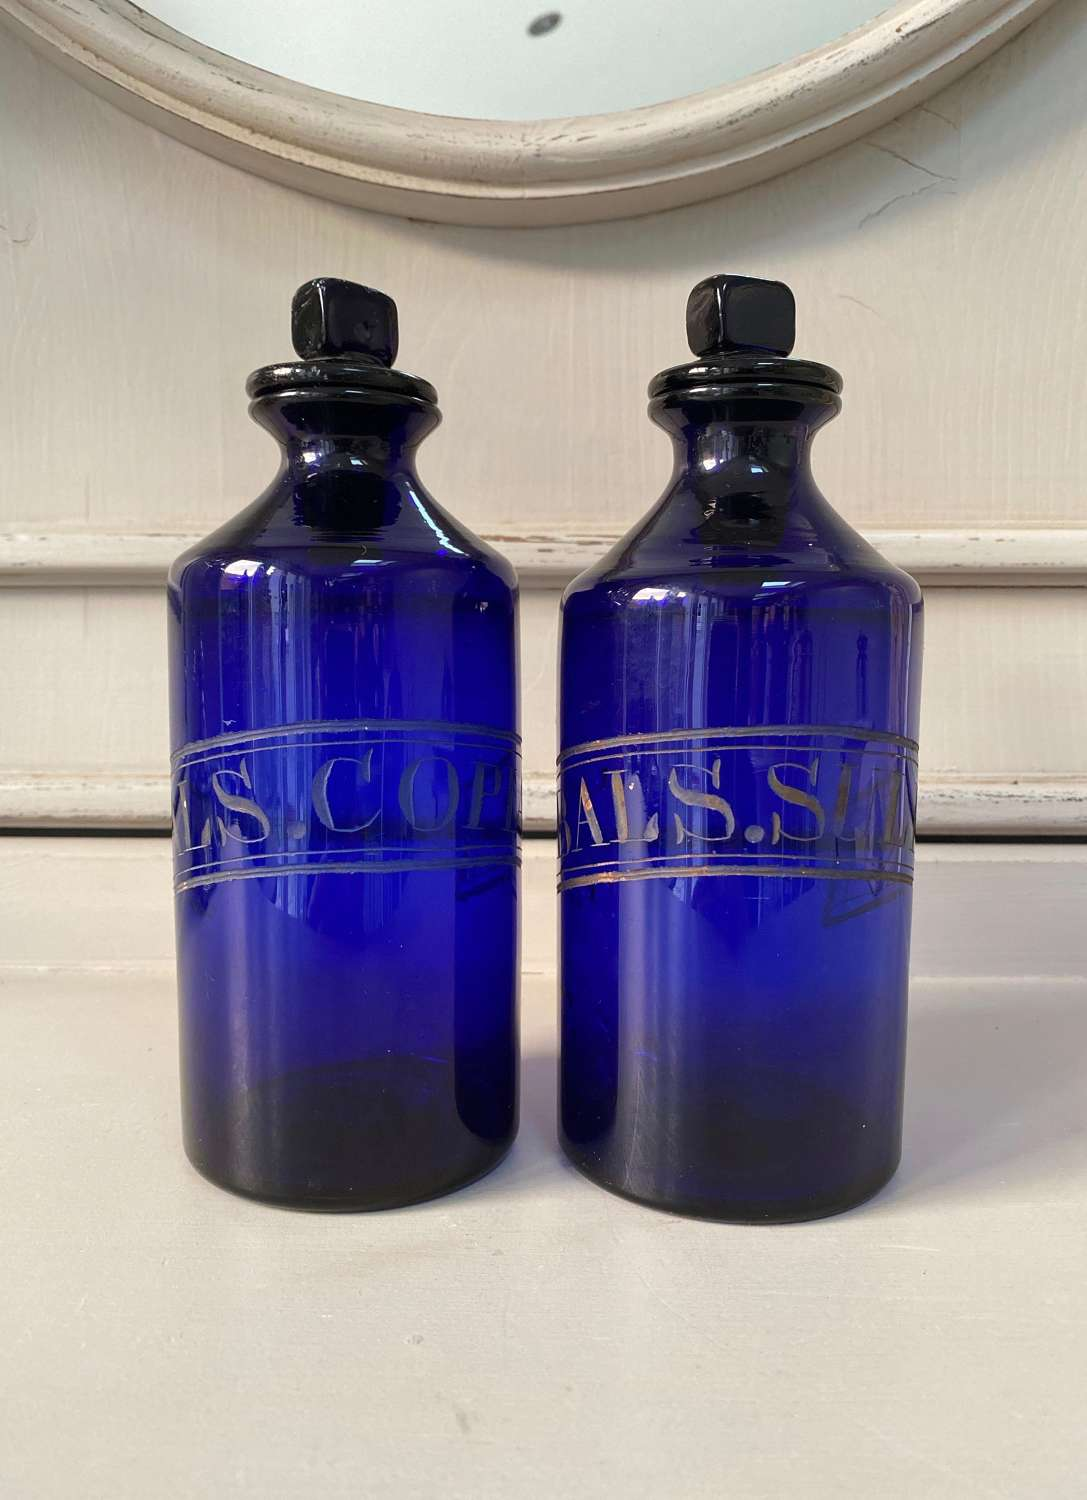 Superb Pair of Georgian Cobalt Blue Etched Glass Chemist Jars